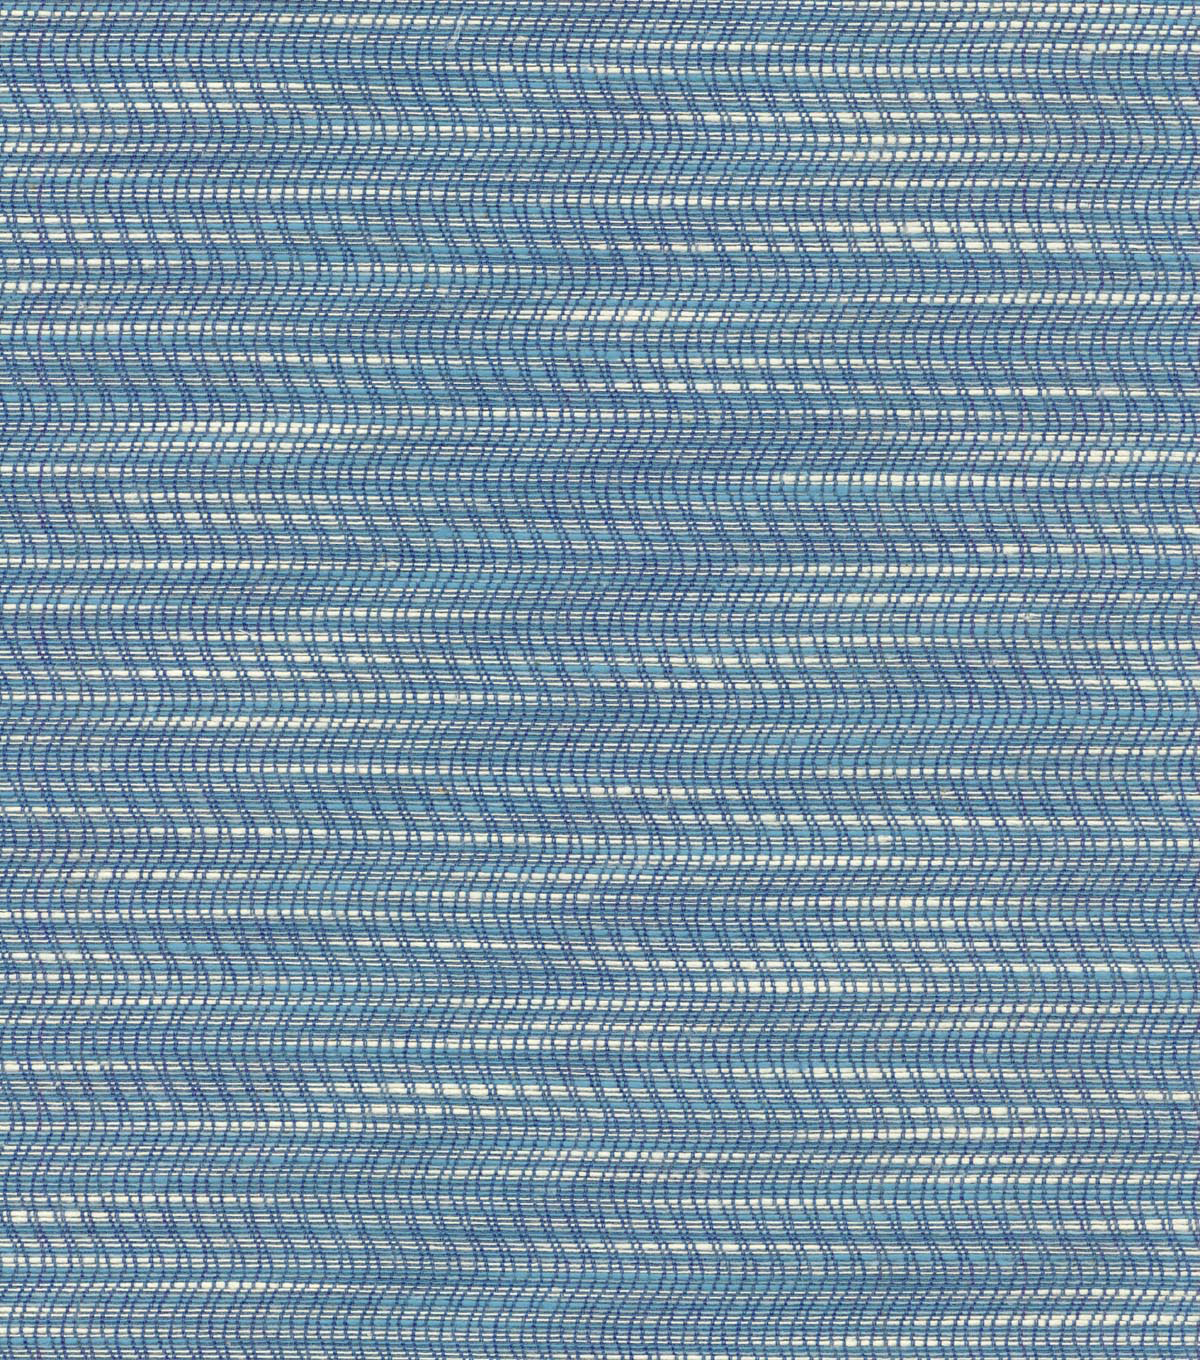 Home Decor 8\u0022x8\u0022 Swatch Fabric-PK Lifestyles Shimmy Porcelain